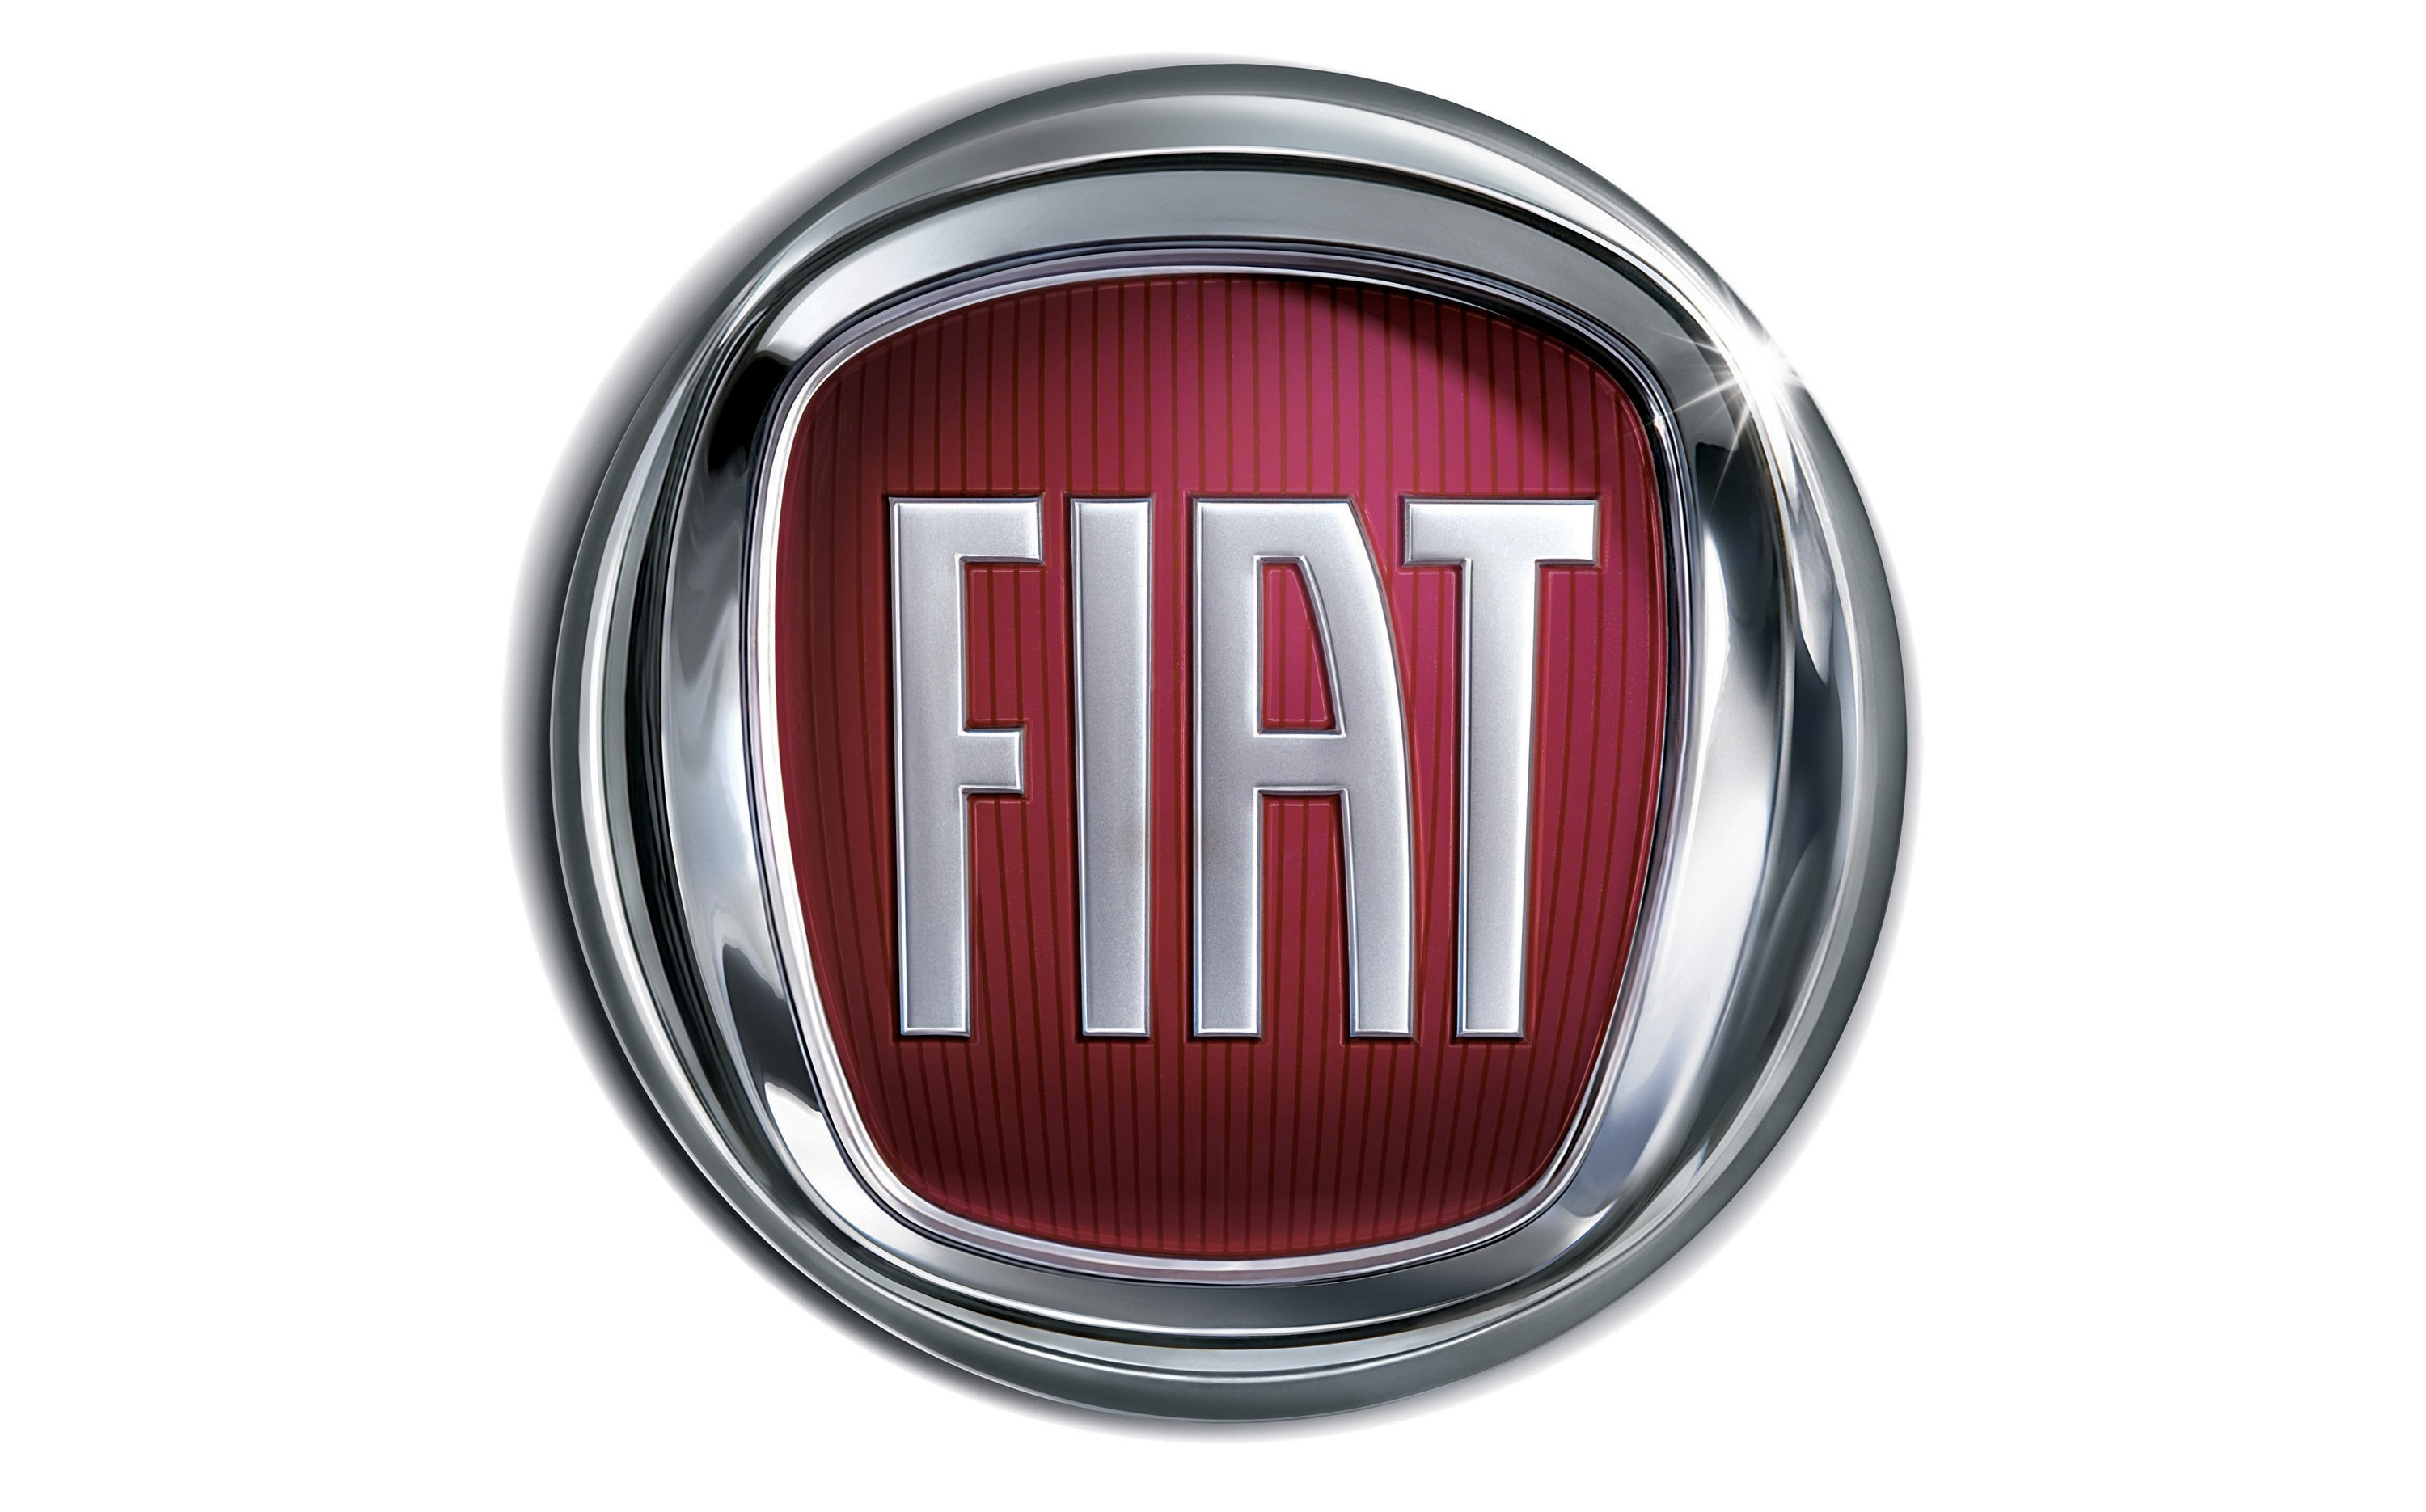 Fiat Chrysler Automobiles NV (NYSE:FCAU) Comes Clean About Stretched out Sales Reports In The US